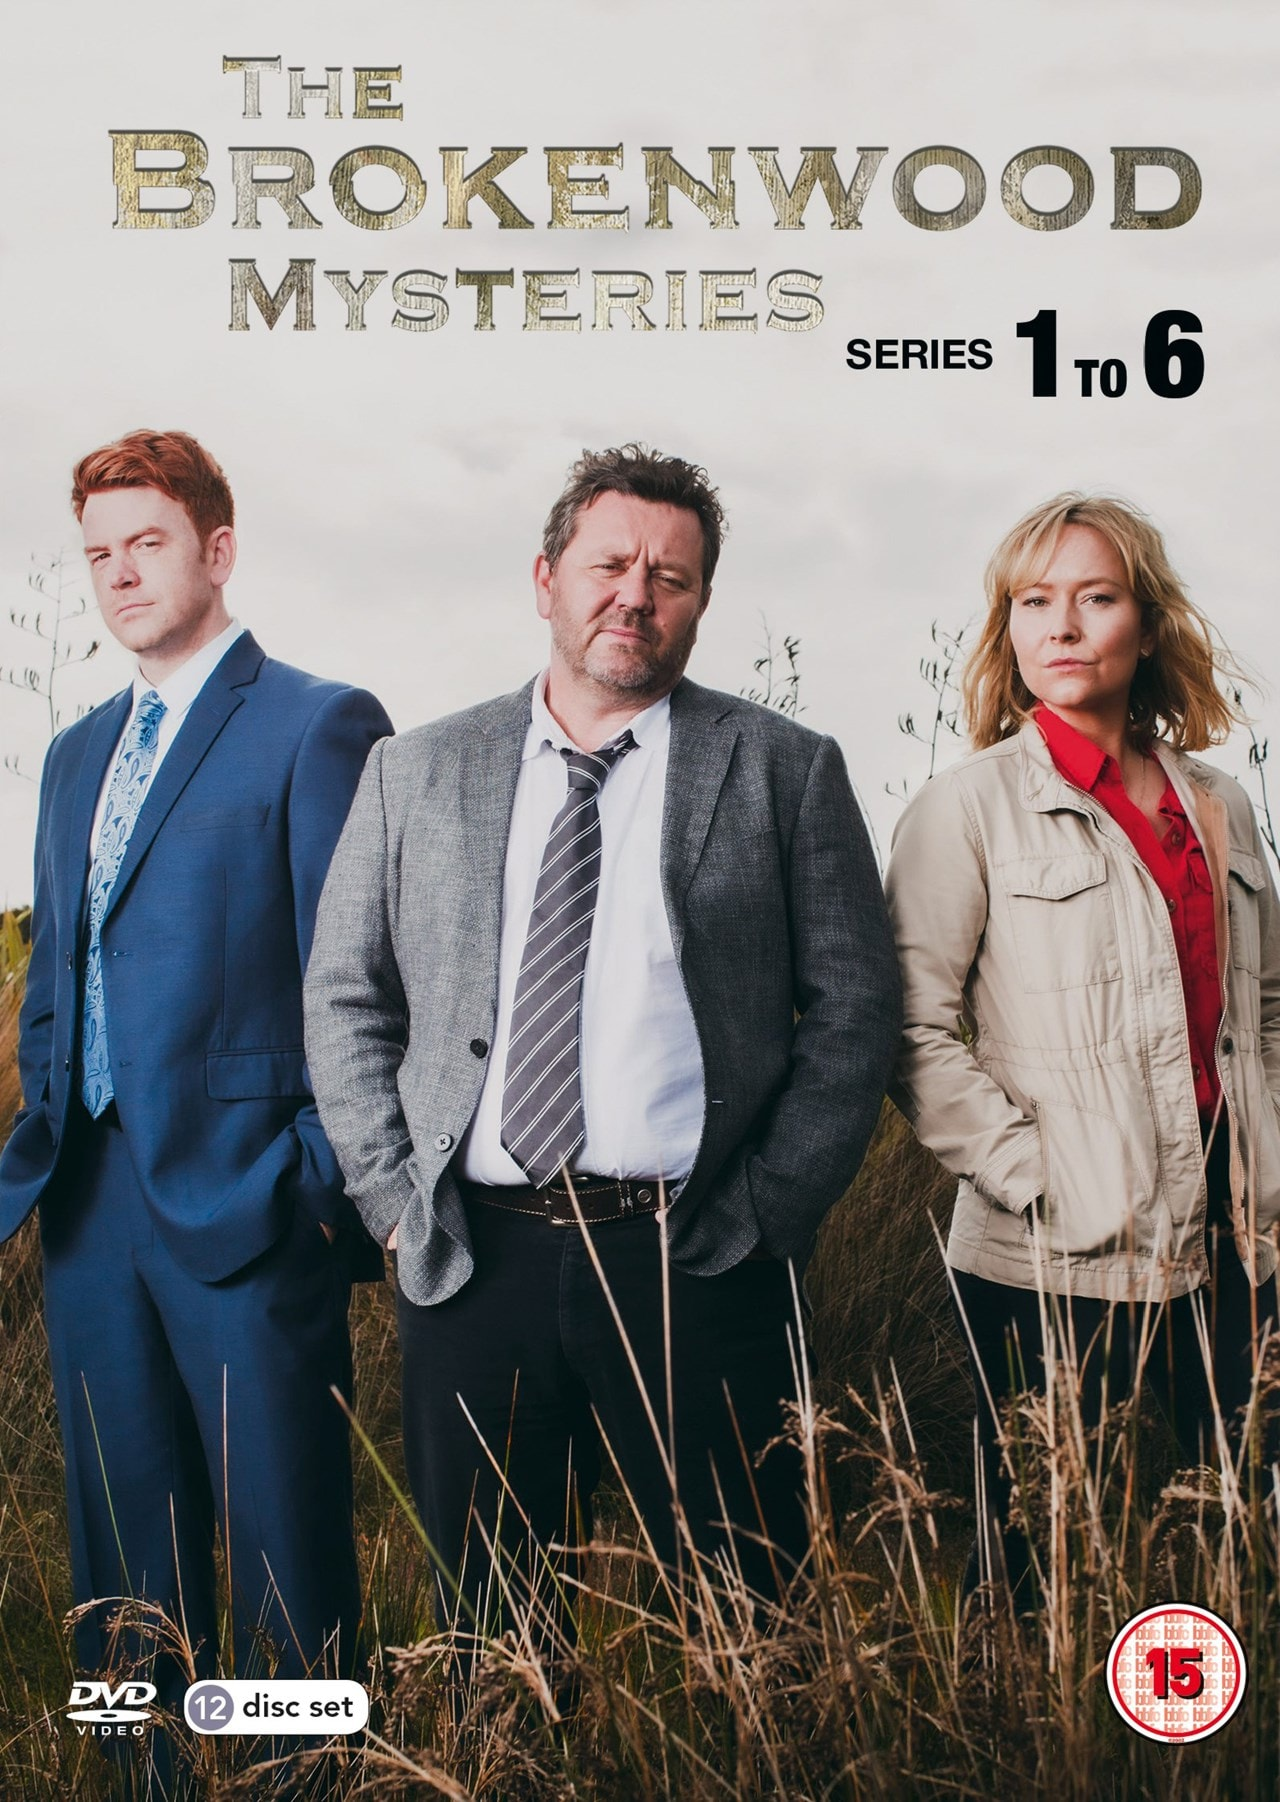 The Brokenwood Mysteries: Series 1 to 6 - 1